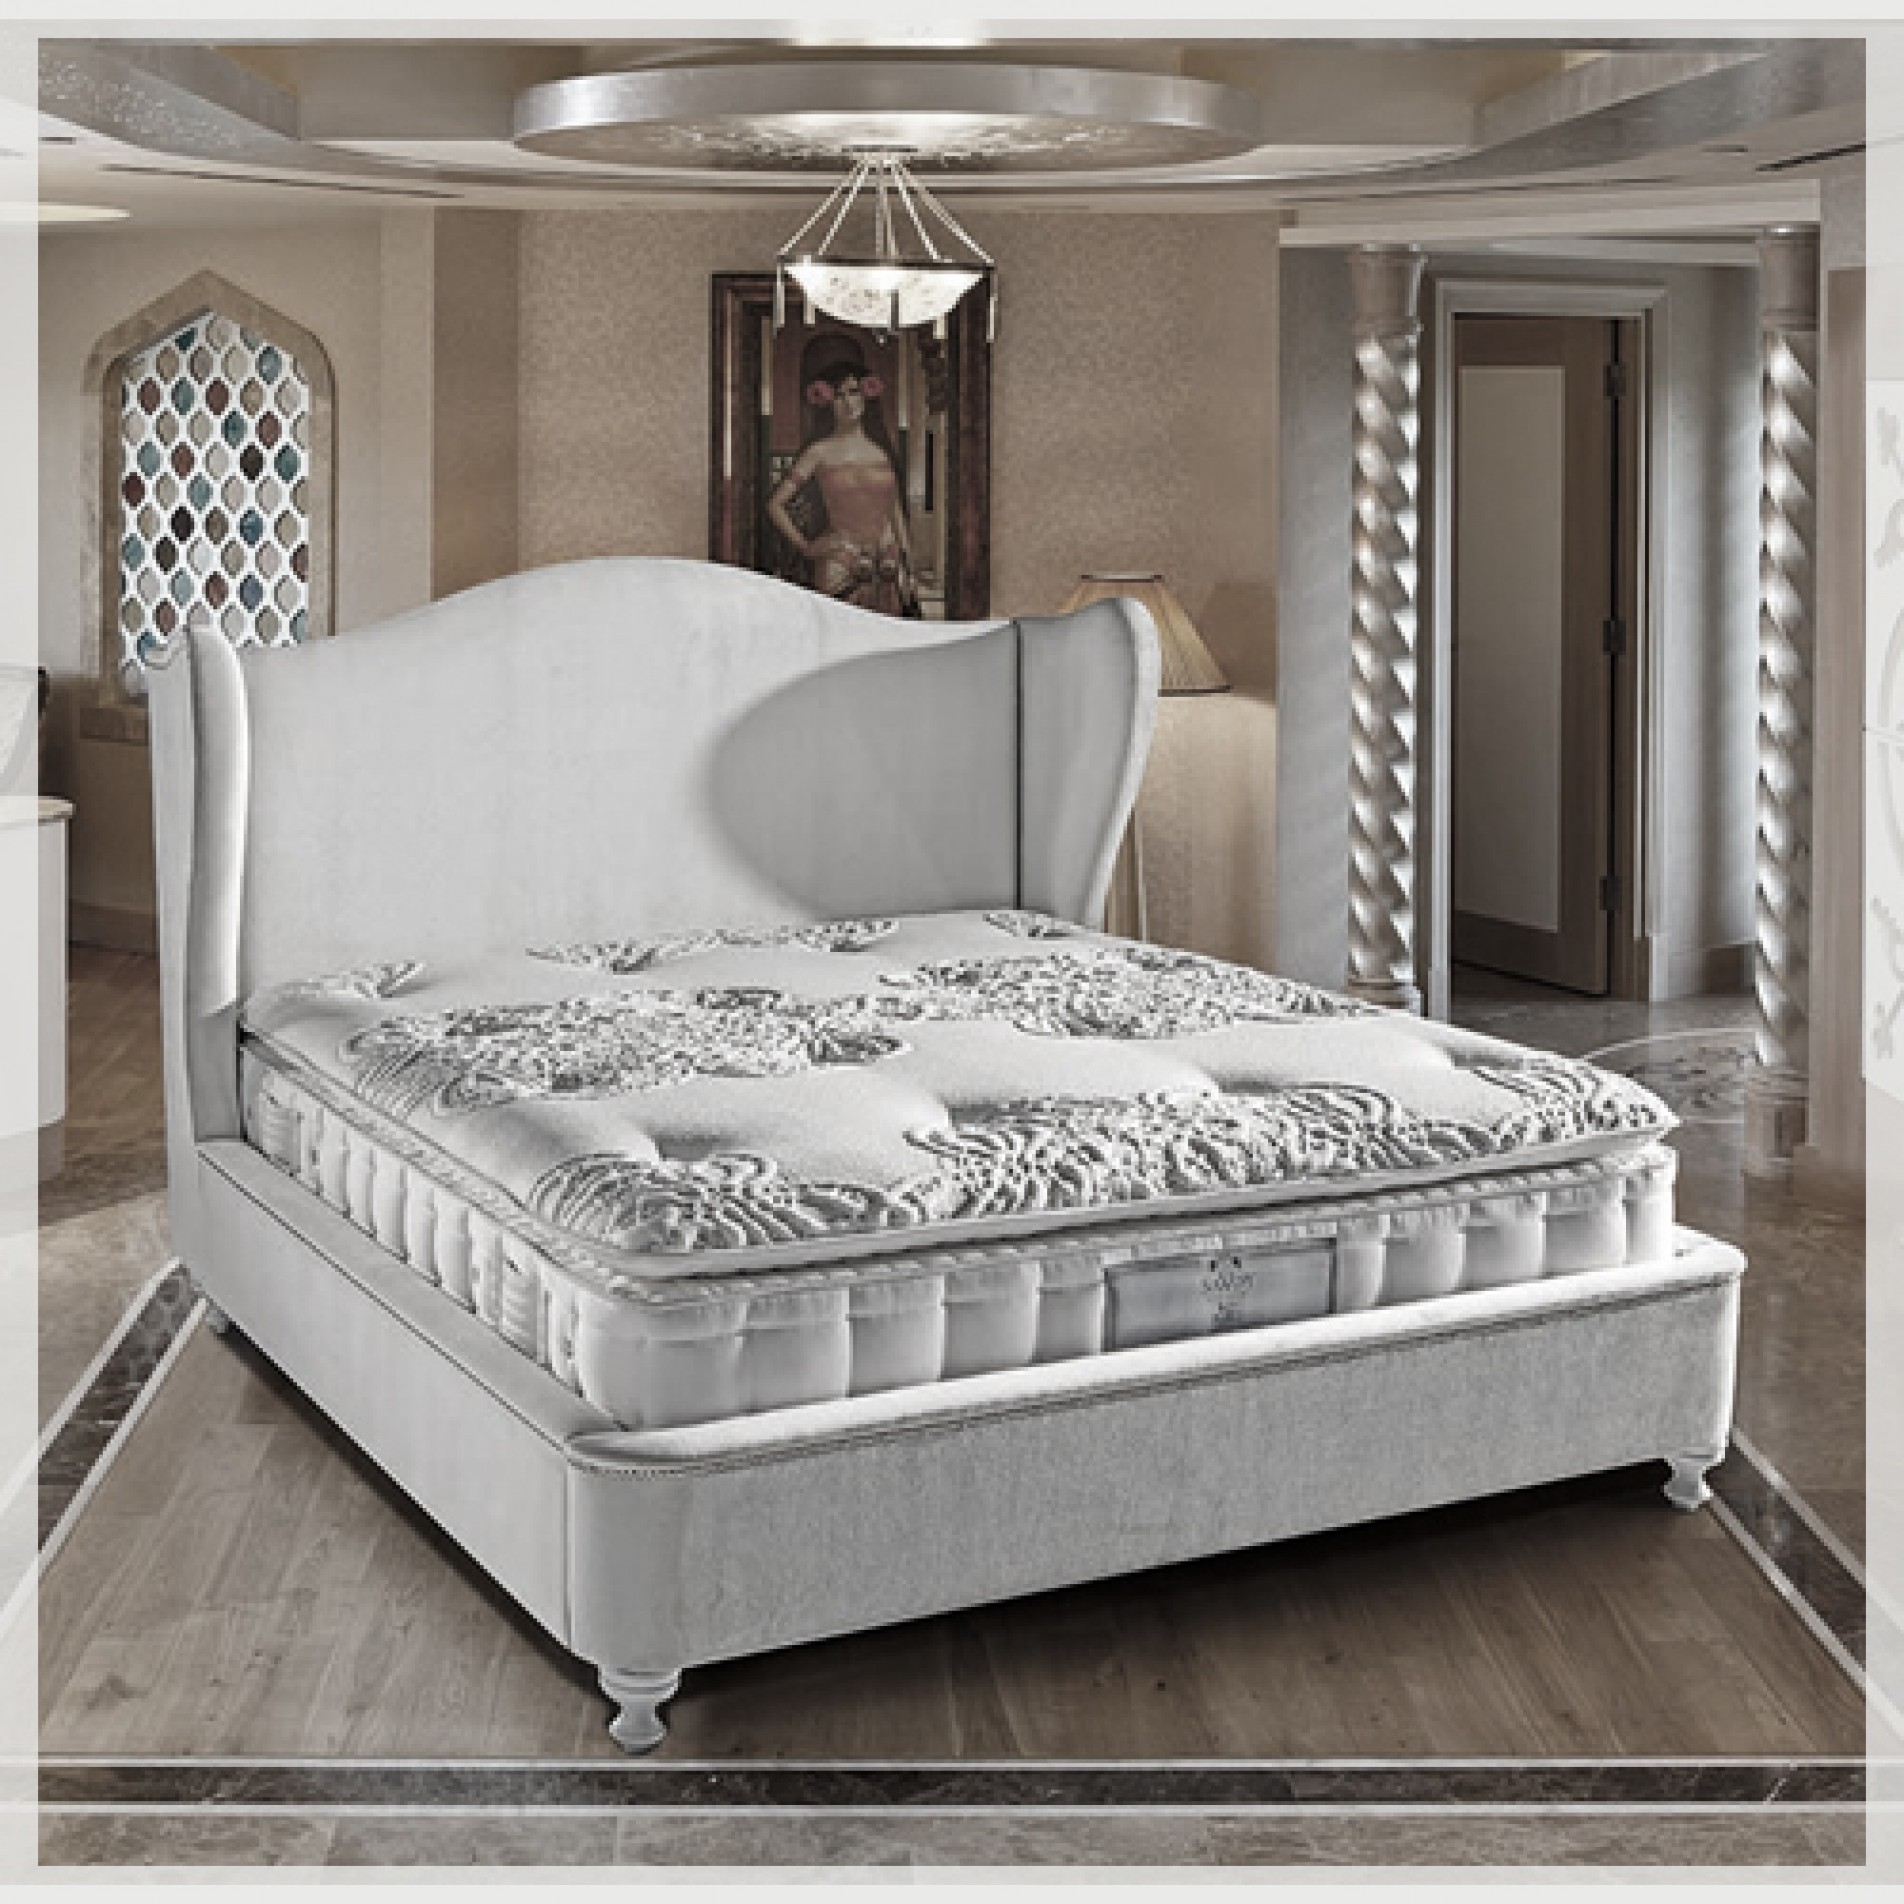 matelas savoy modulance. Black Bedroom Furniture Sets. Home Design Ideas